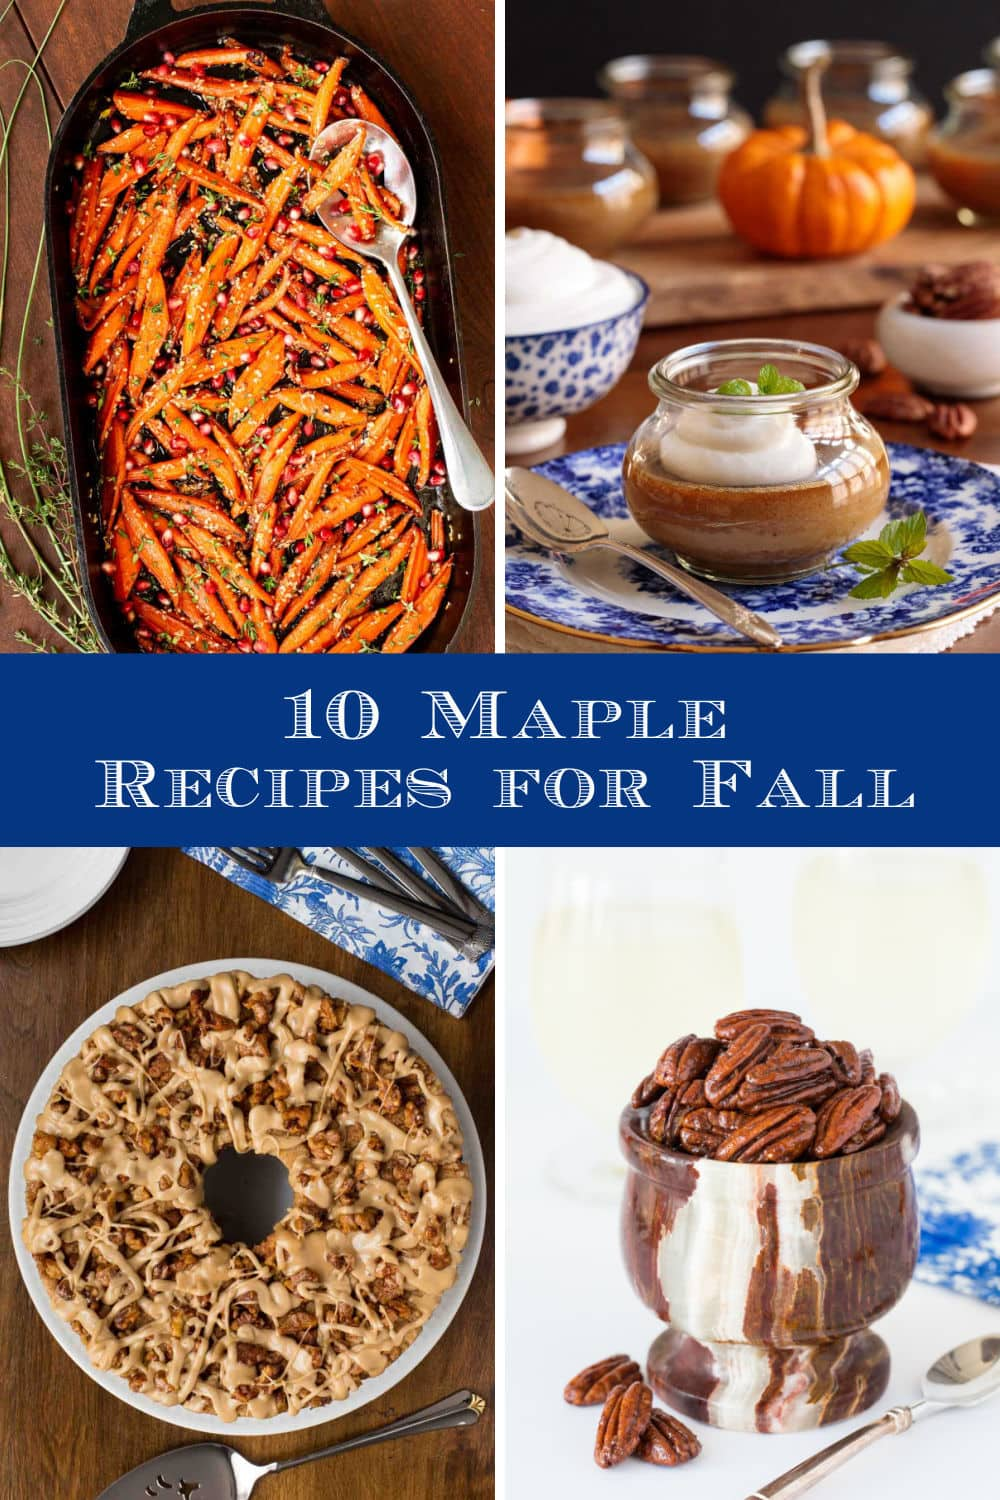 Marvelous Maple! 10 Delicious Recipes for Fall